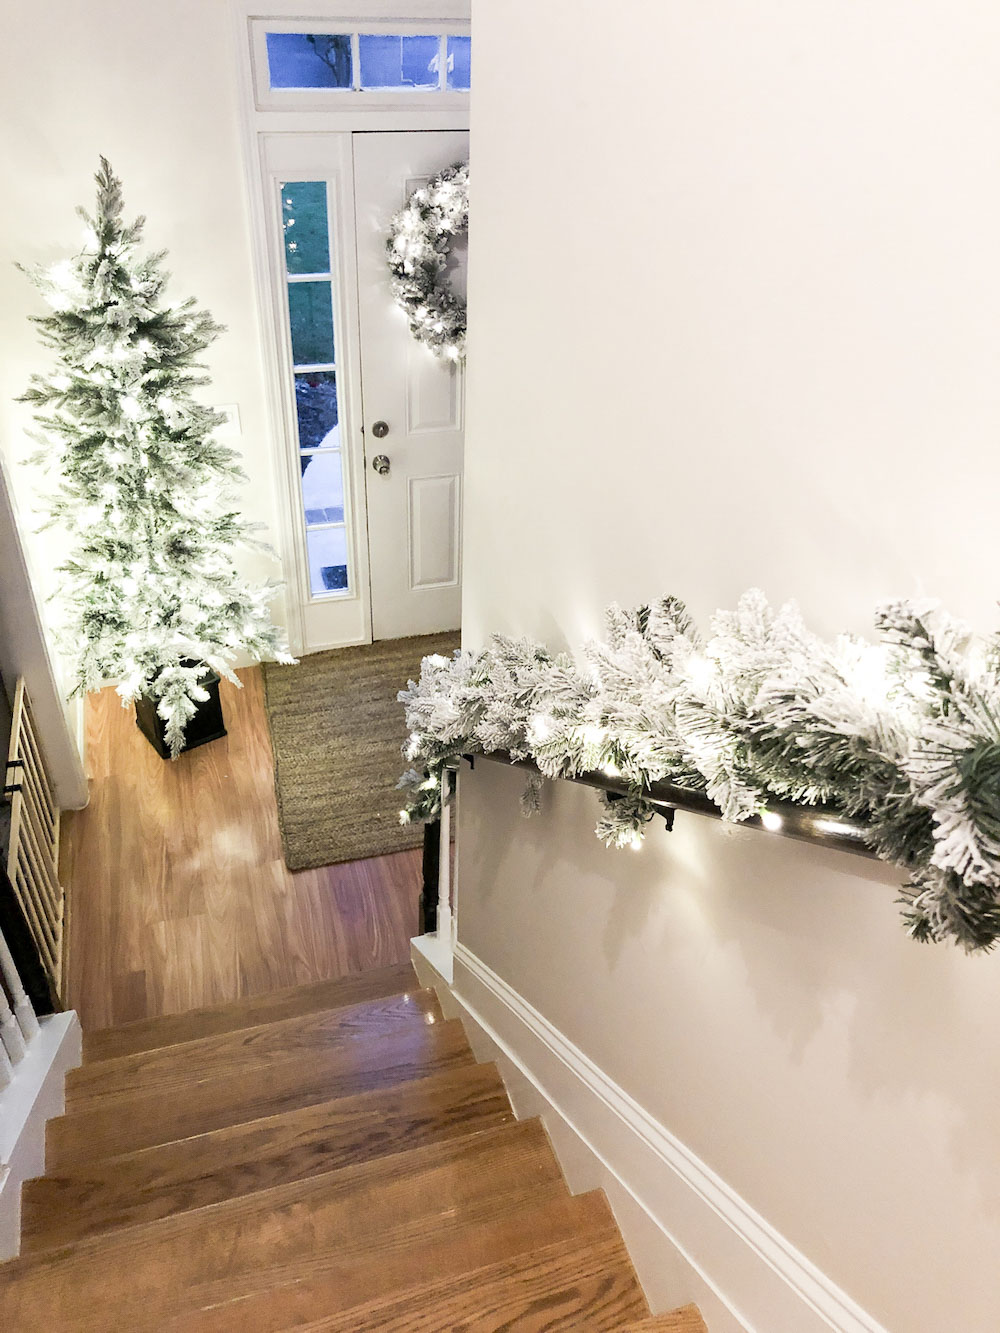 Holiday Greenery on Display in our Entryway